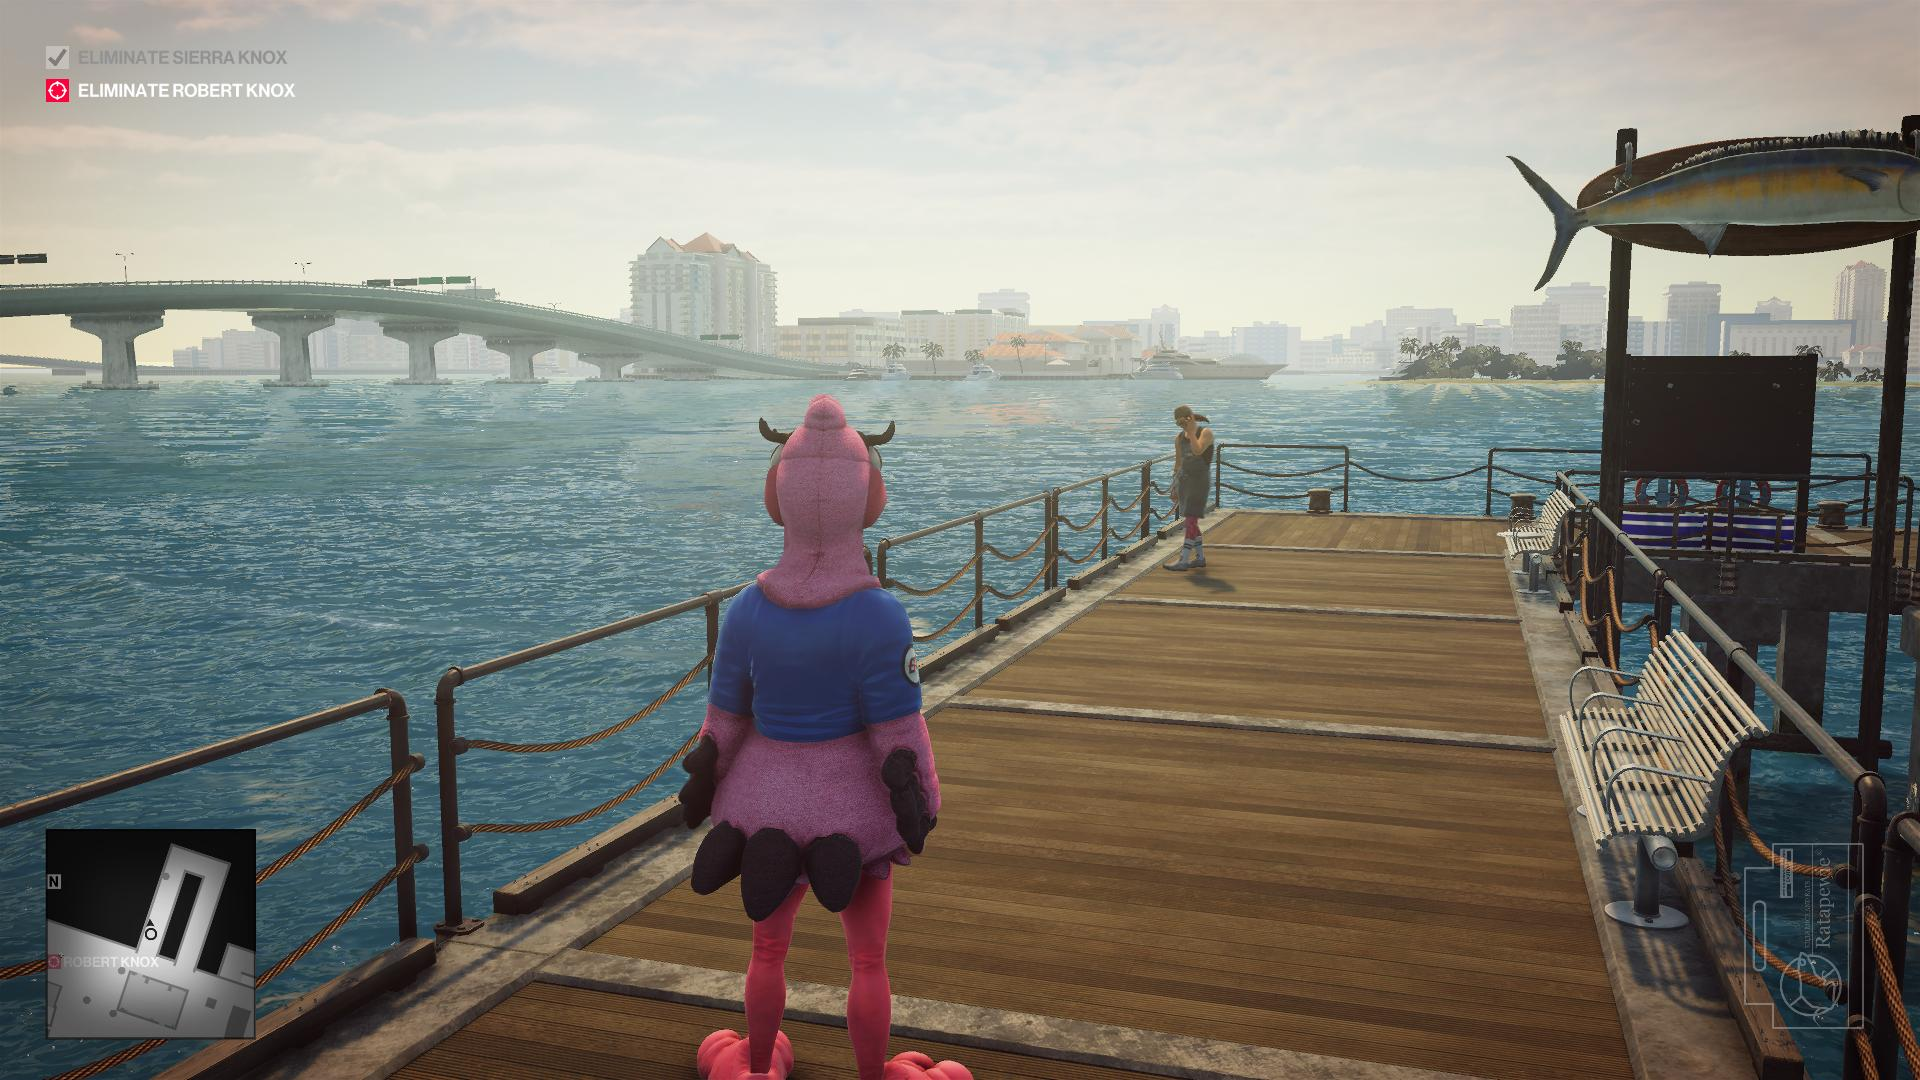 Agent 47 still in the mascot costume, walking on a dock towards a man with a bandana.